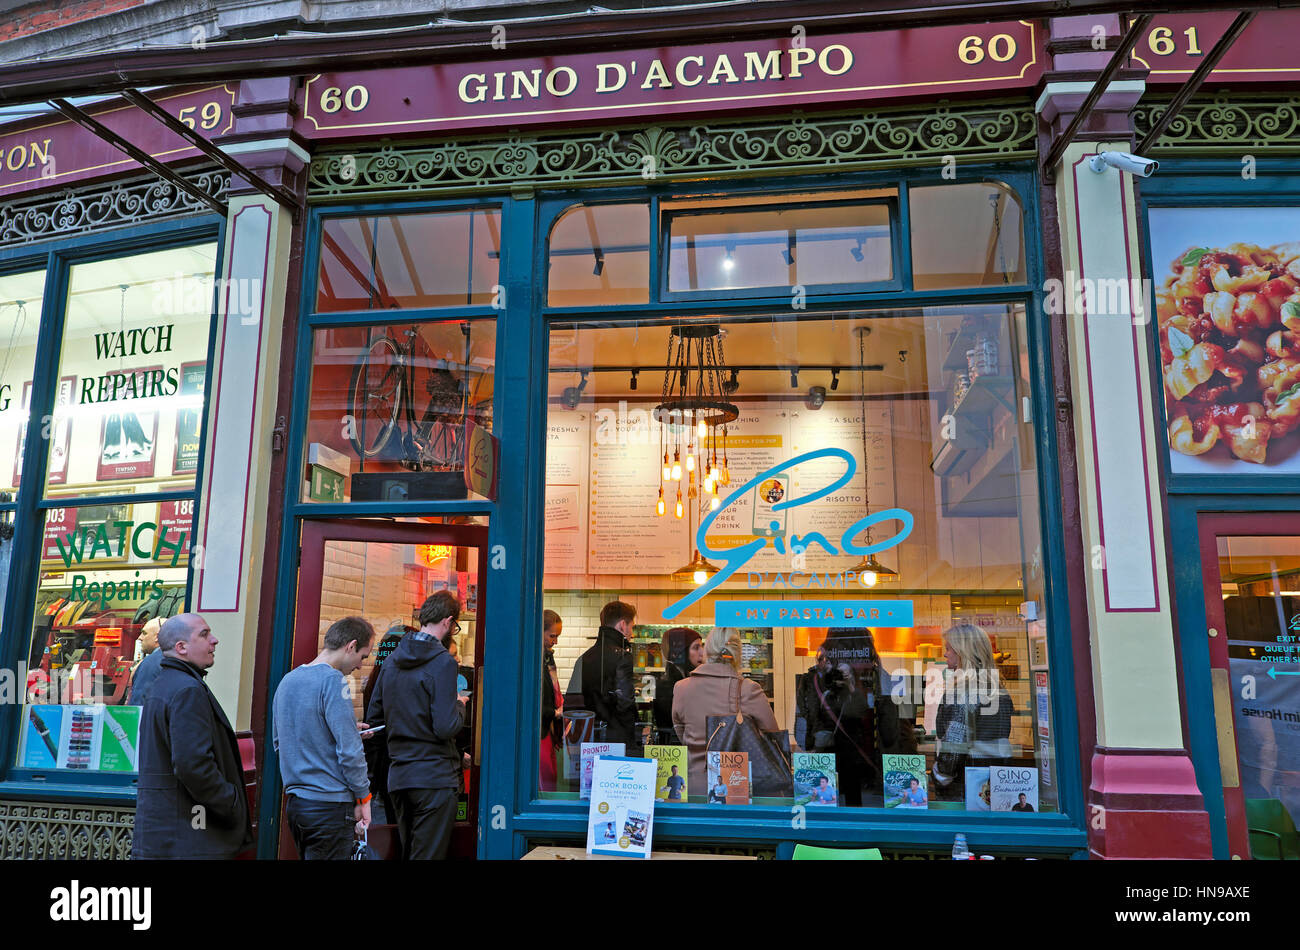 Customers queuing at Gino D'Acampo Italian Pasta Bar restaurant at lunchtime in Leadenhall Market in The City - Stock Image